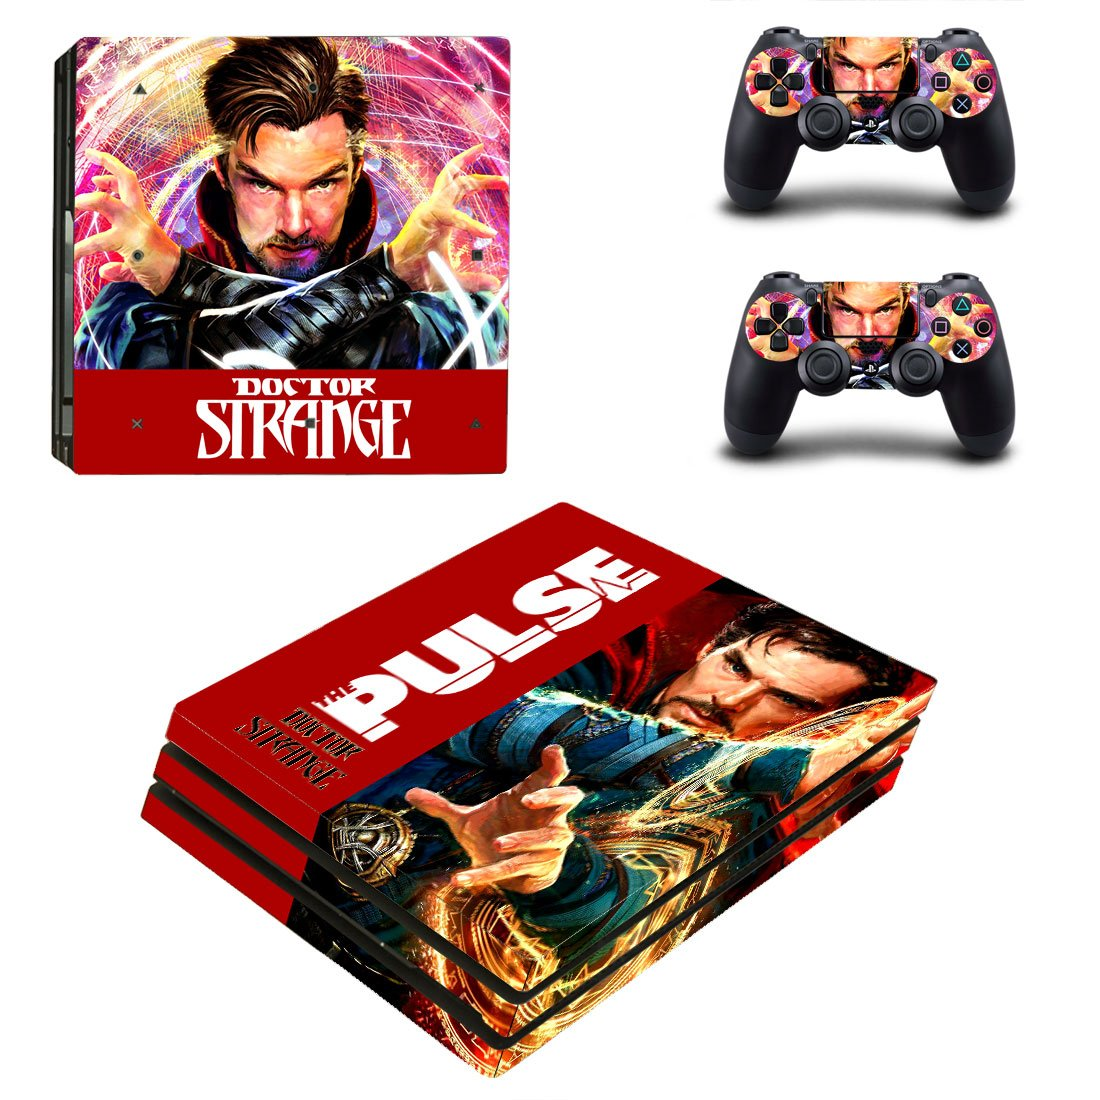 Dr Strange PS4 Pro Skin Sticker Wrap